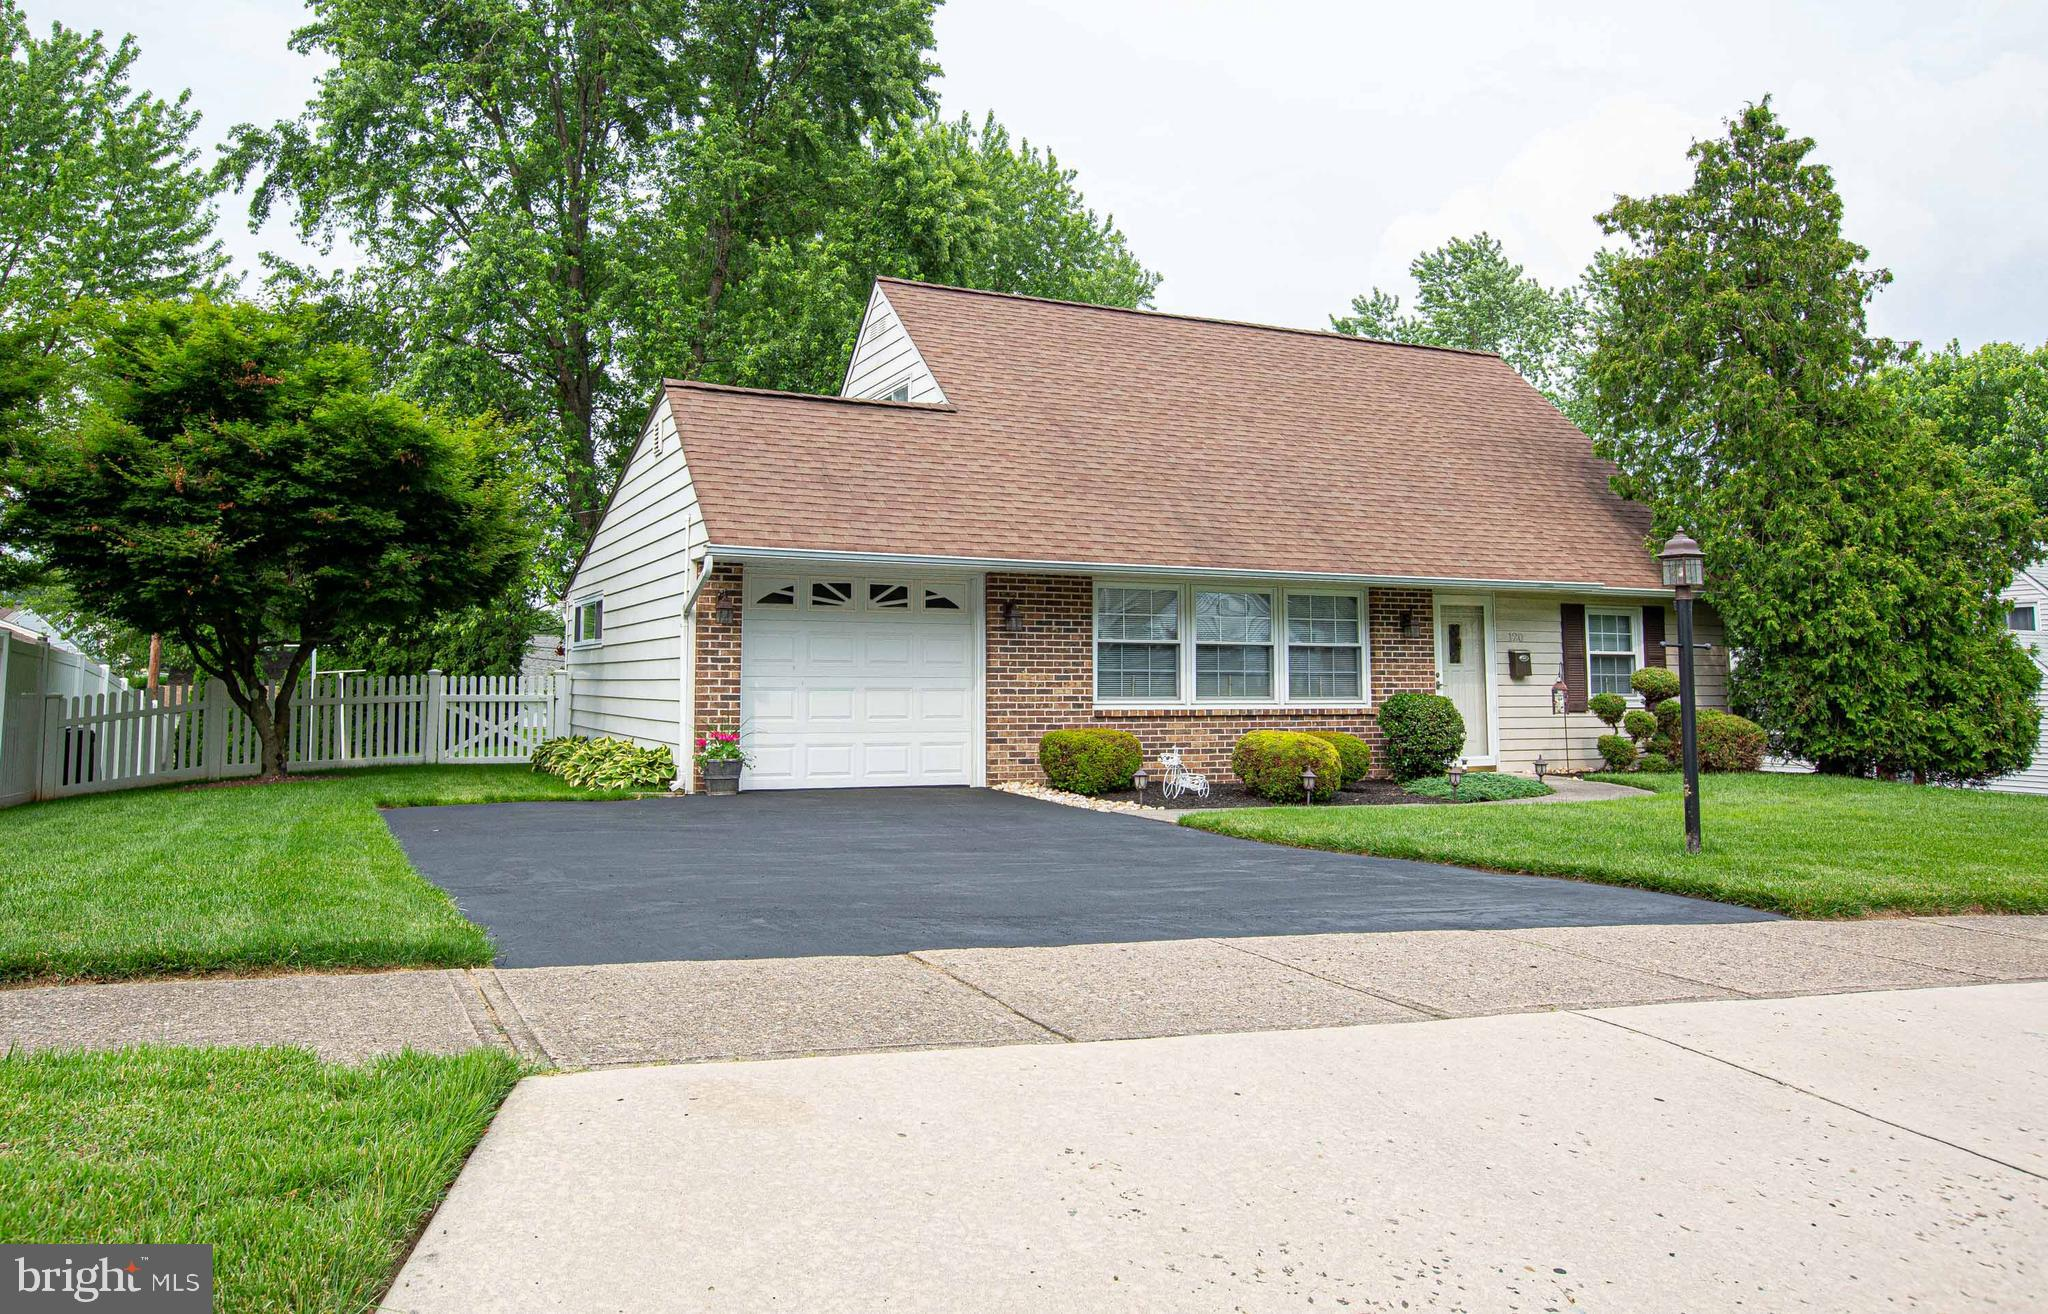 120 UPPER ORCHARD DRIVE, LEVITTOWN, PA 19056